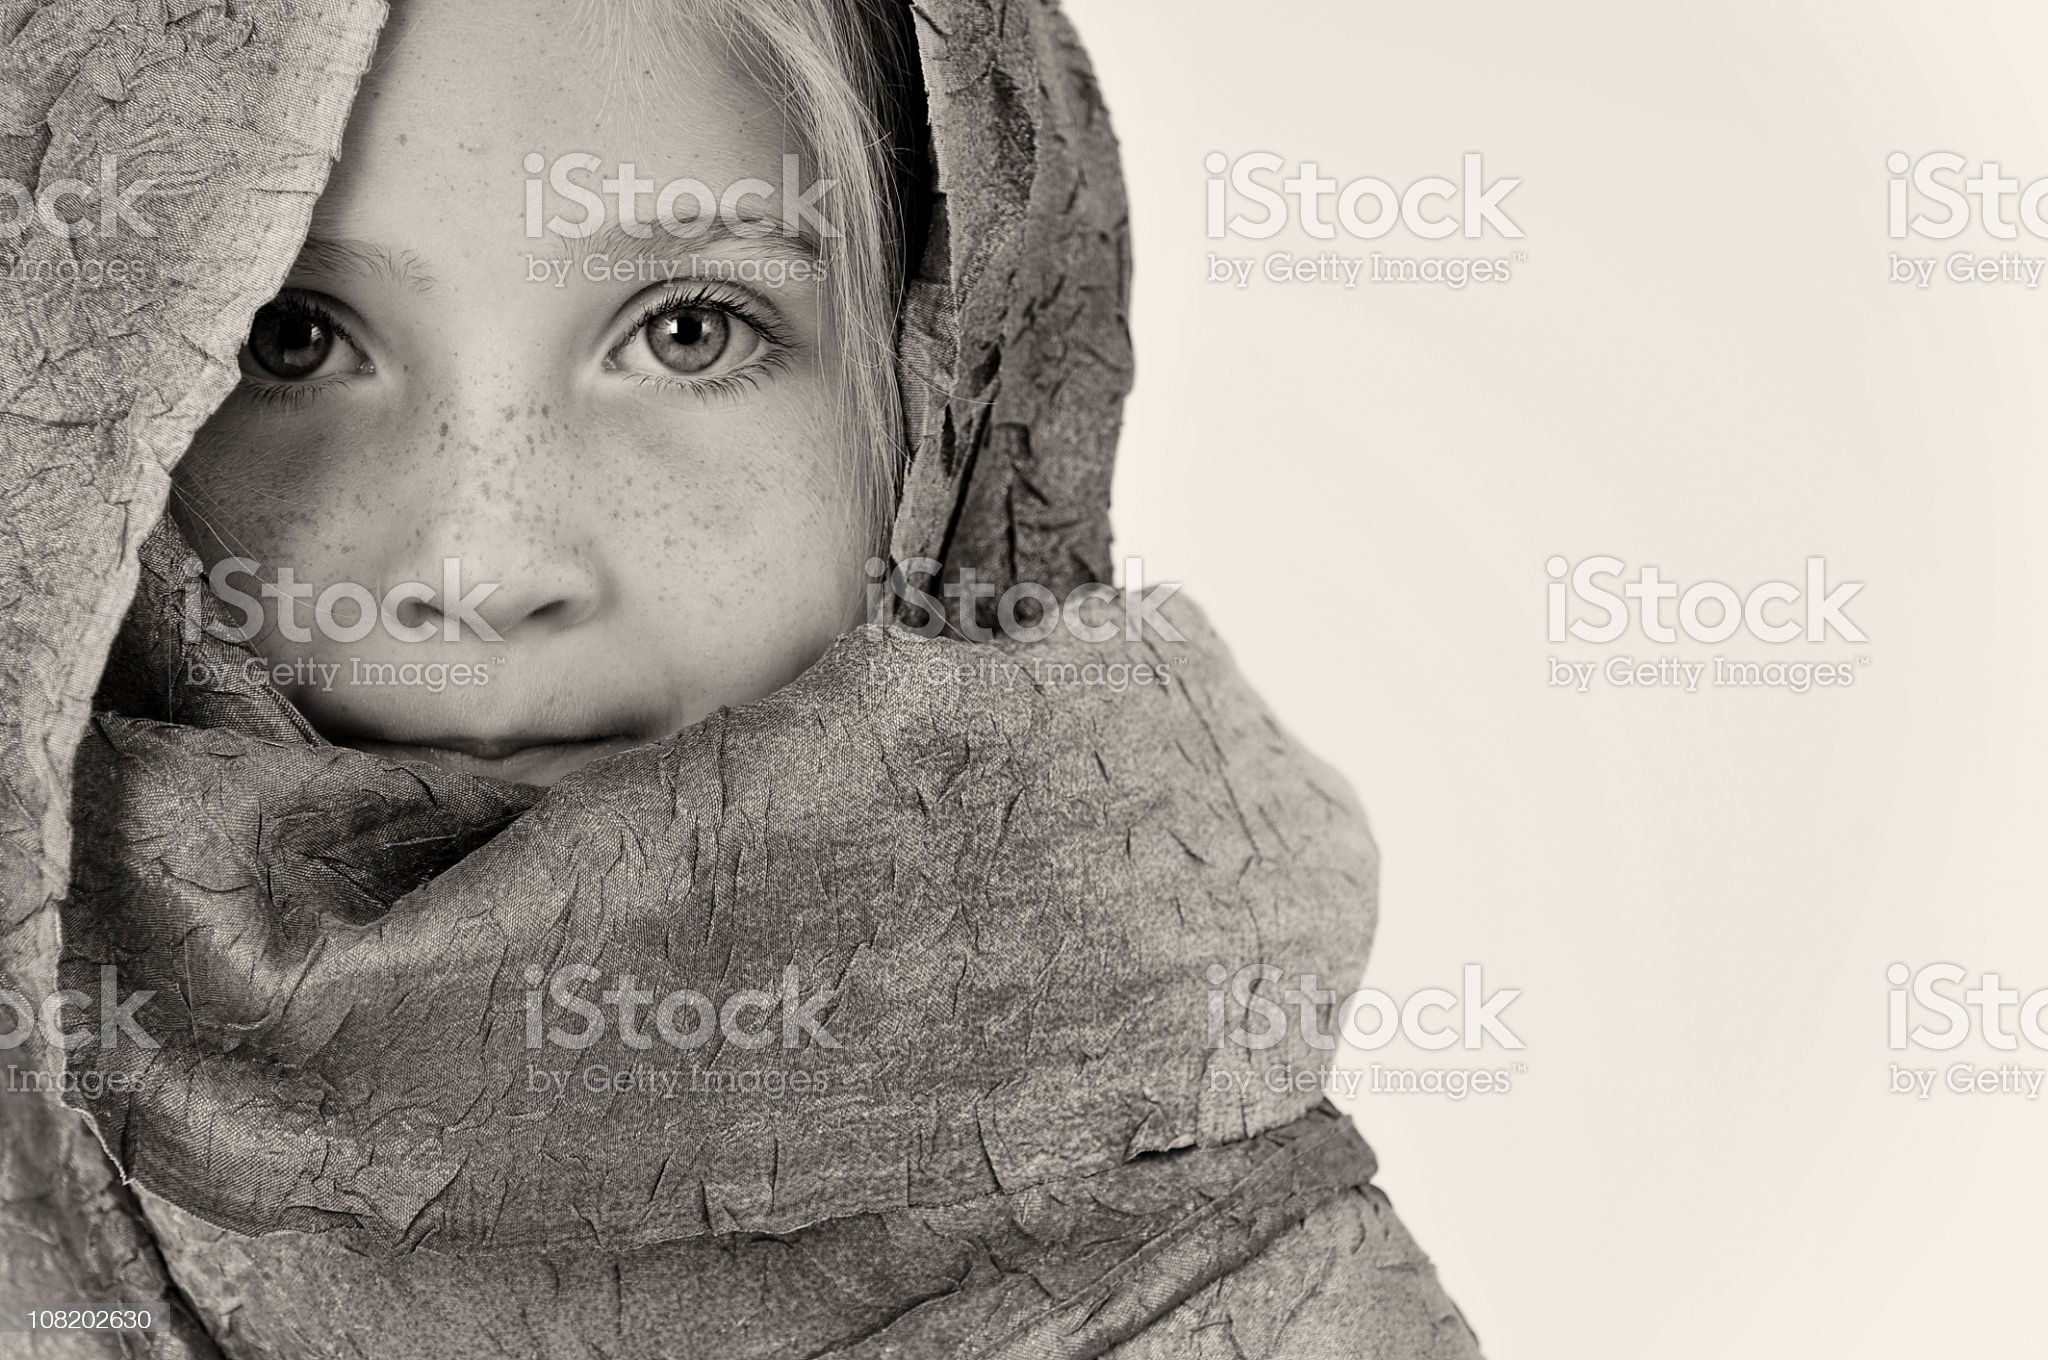 Portrait of Little Girl Wrapped in Shawl, Black and White royalty-free stock photo